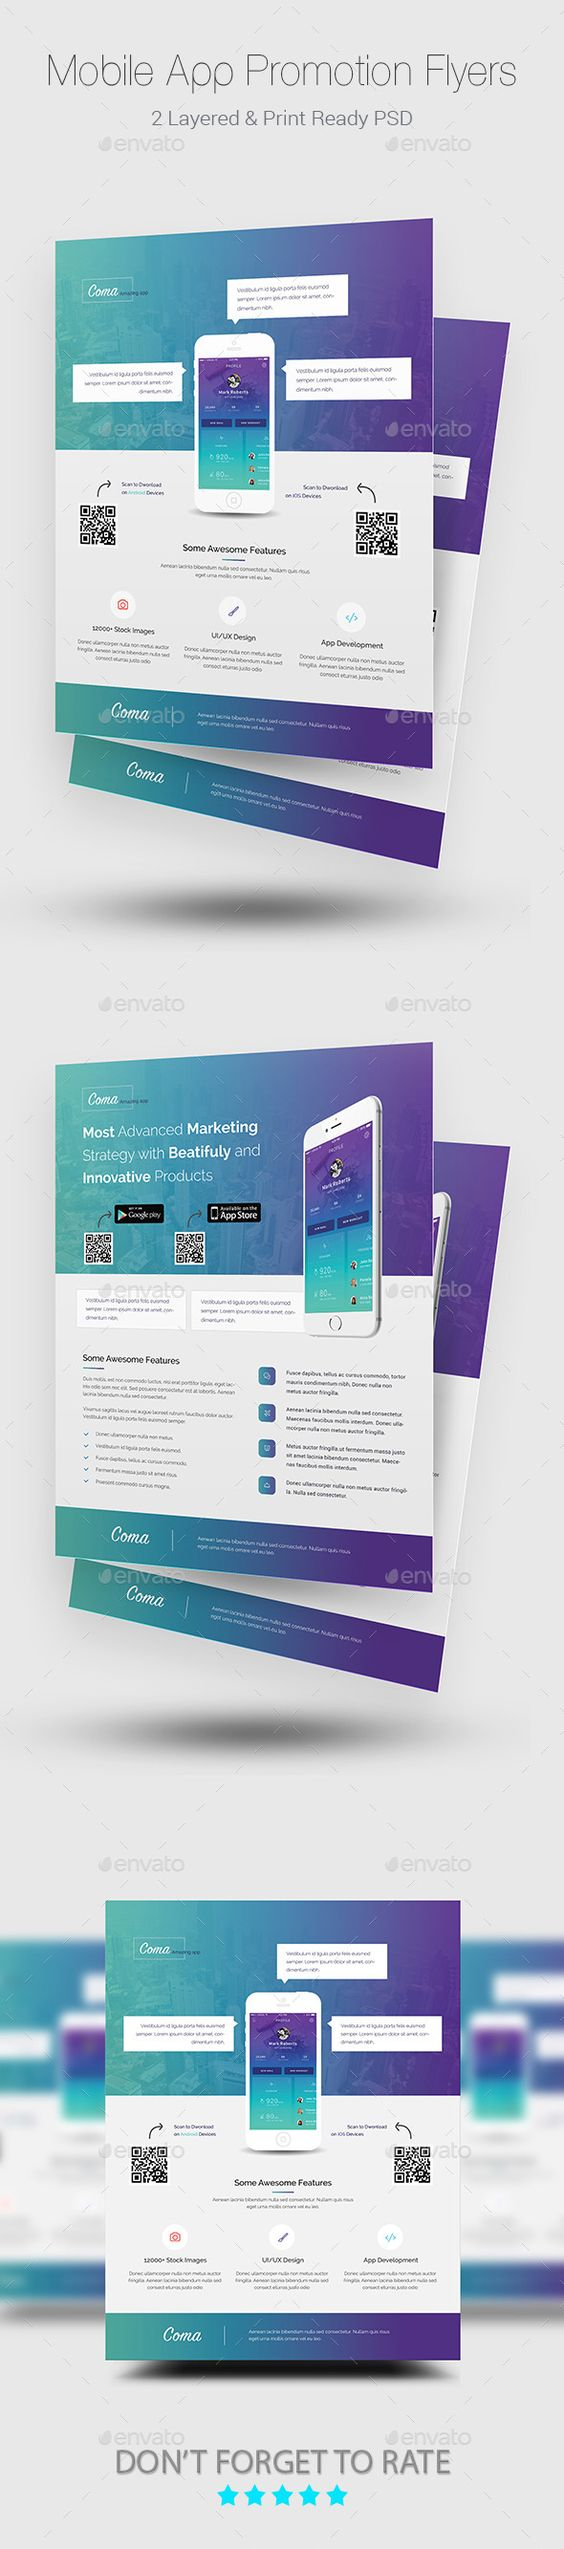 promotional brochure template - mobile app promotion flyer templates mobile app flyer